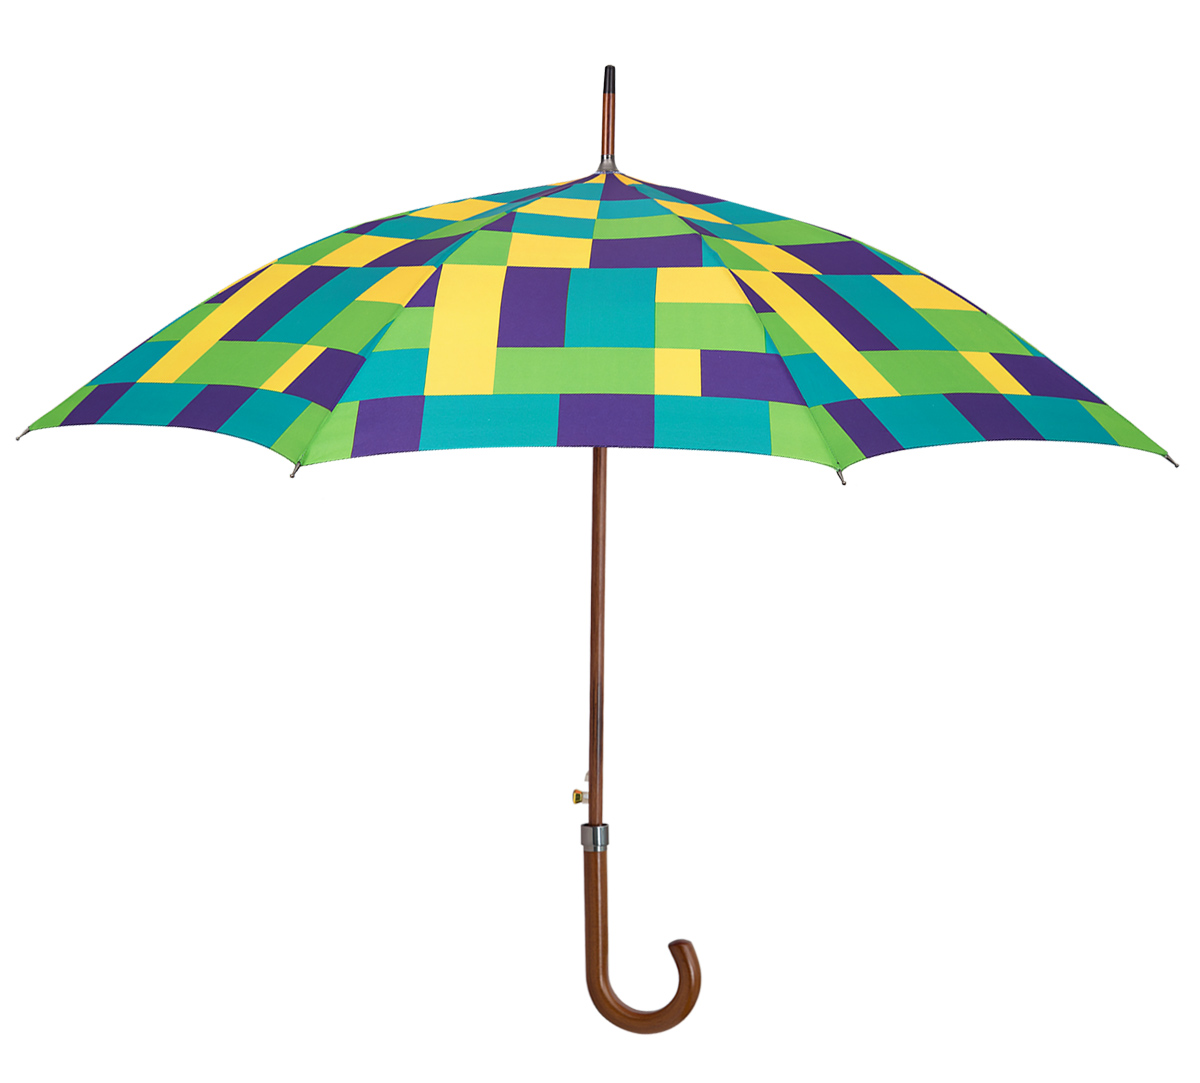 Buy Umbrella Online